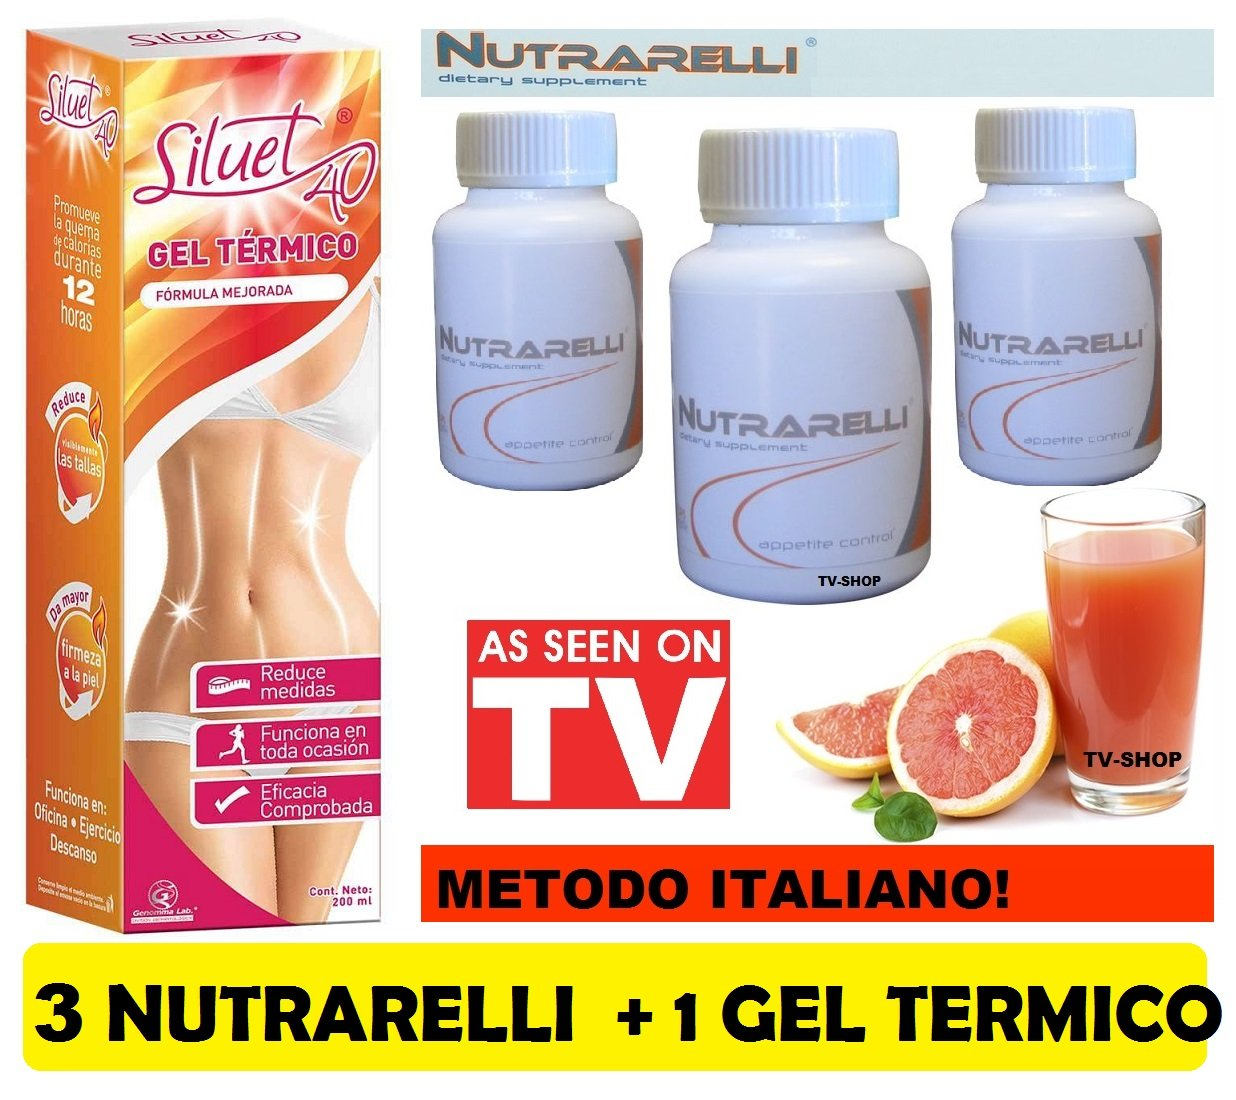 3 Nutrarelli + 1 Destok Gel